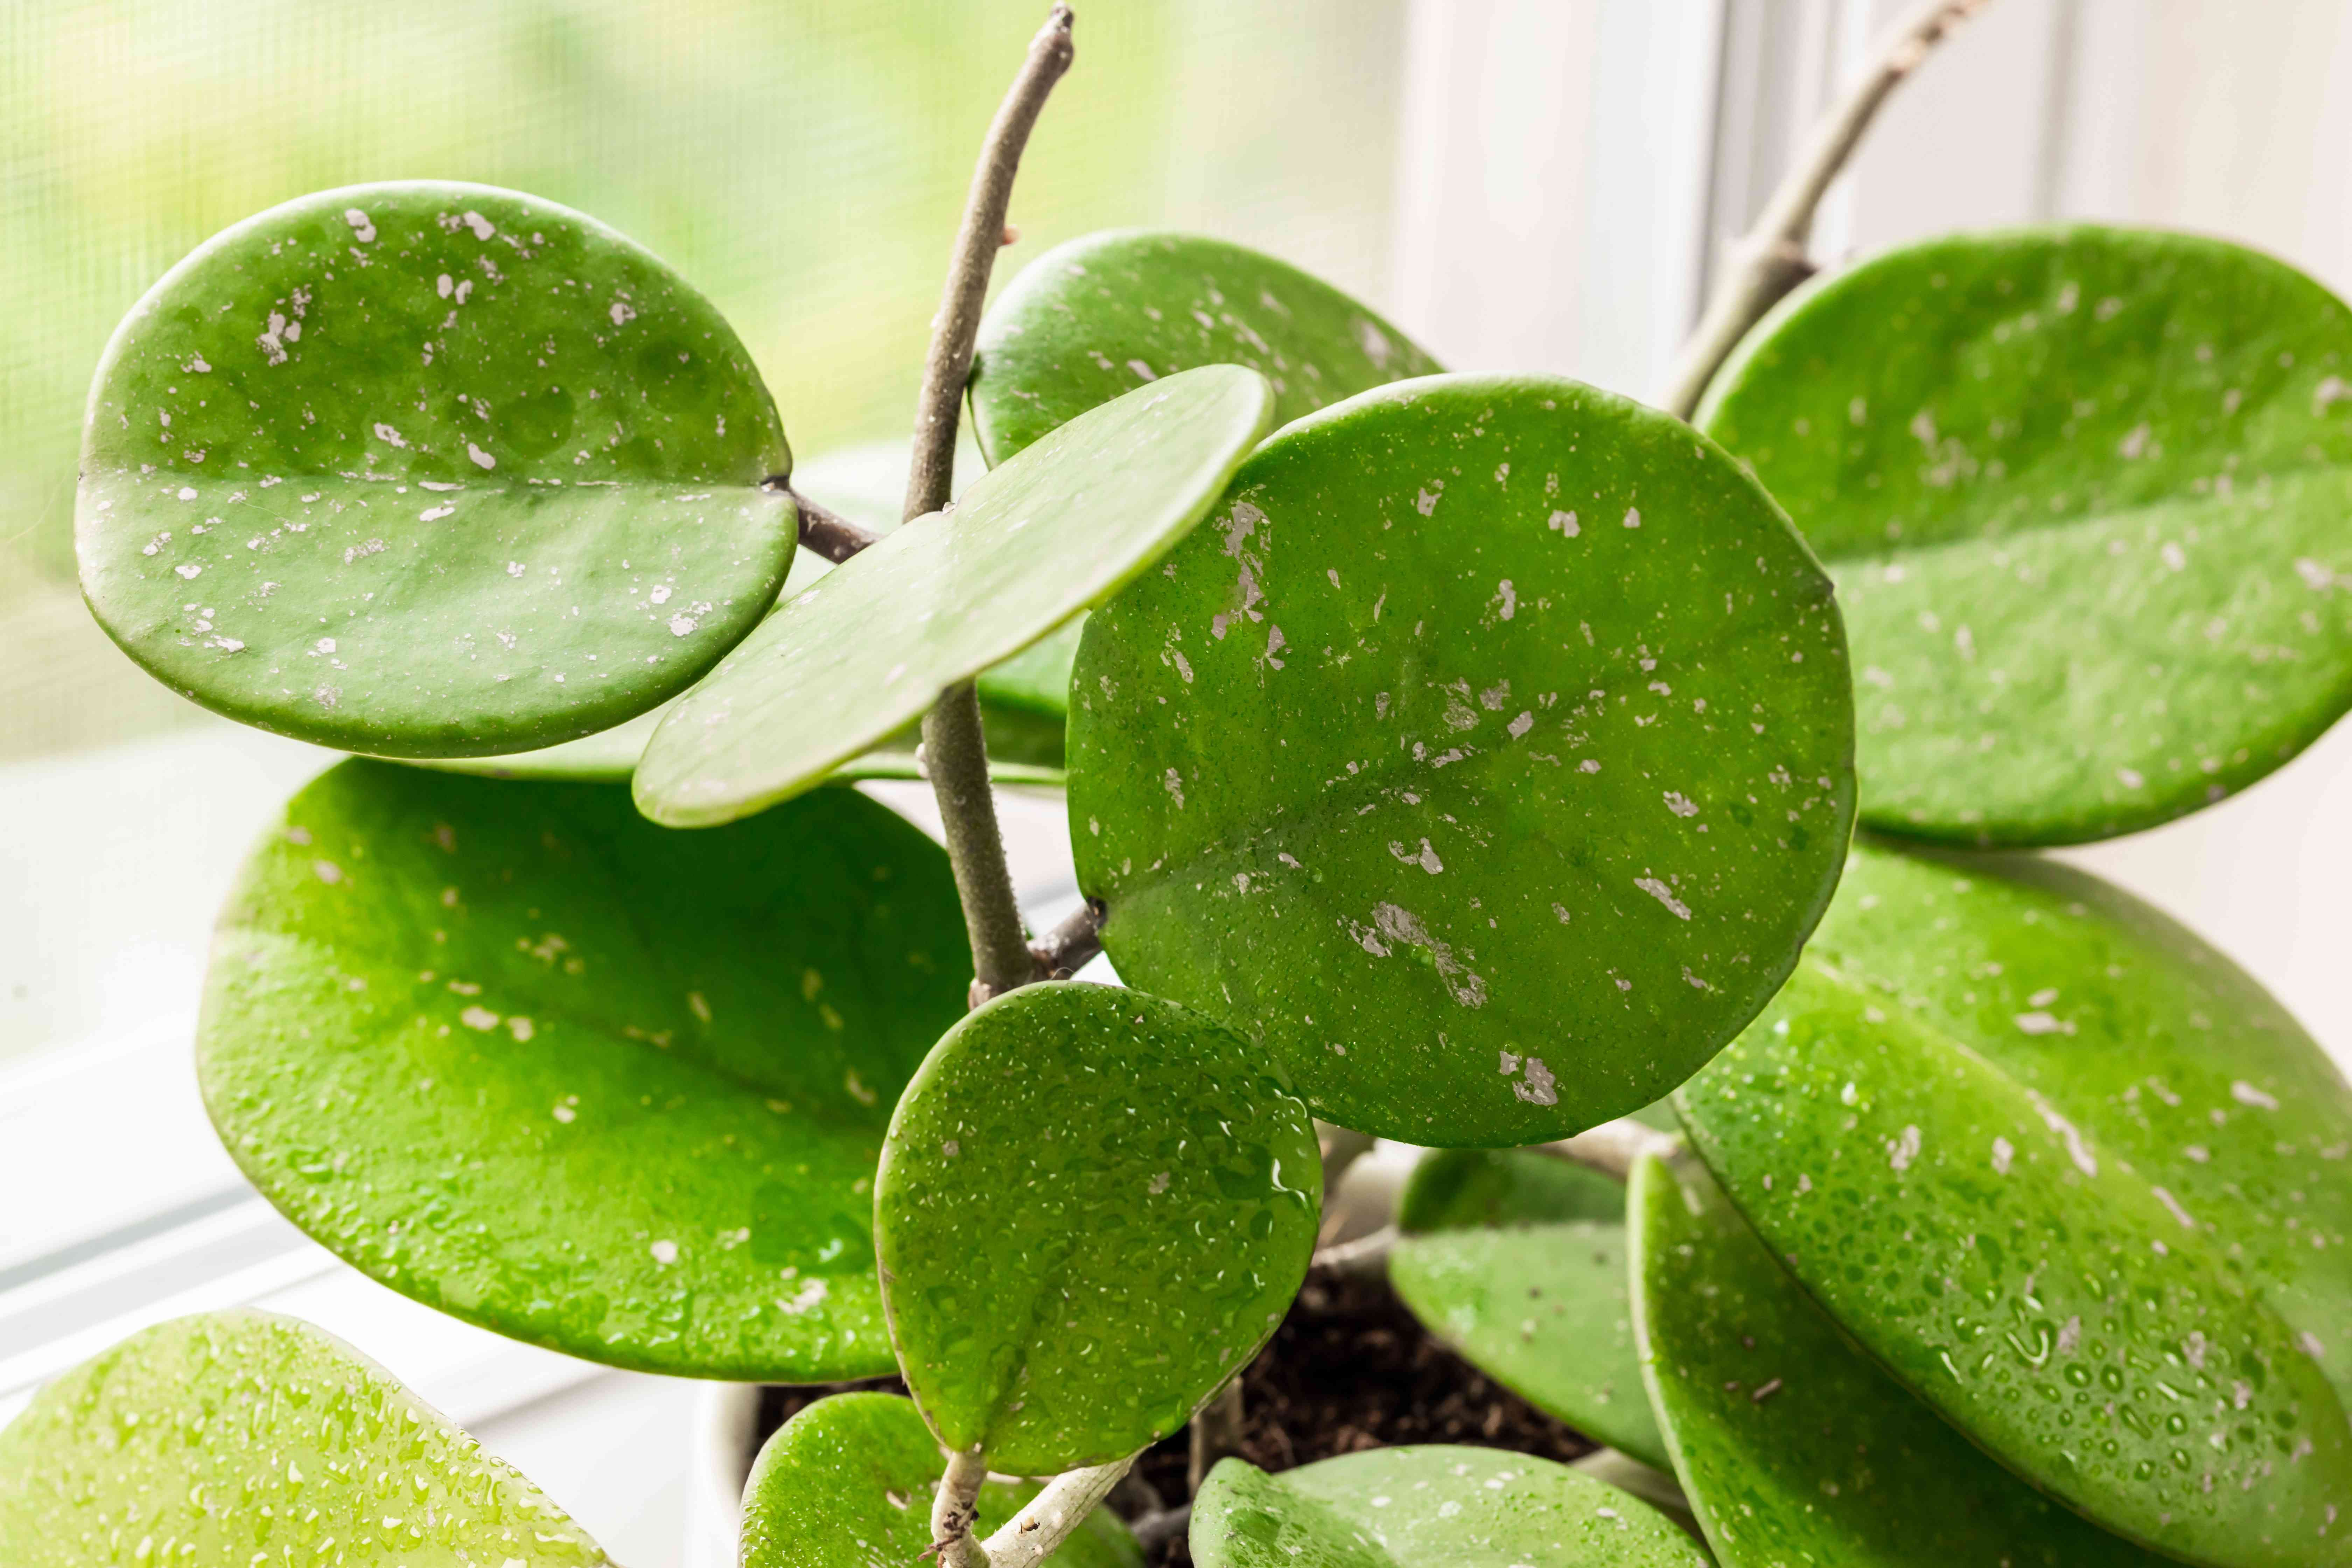 Hoya obovatta semi-suclent plant with large oval leaves and tendrils next to window closeup